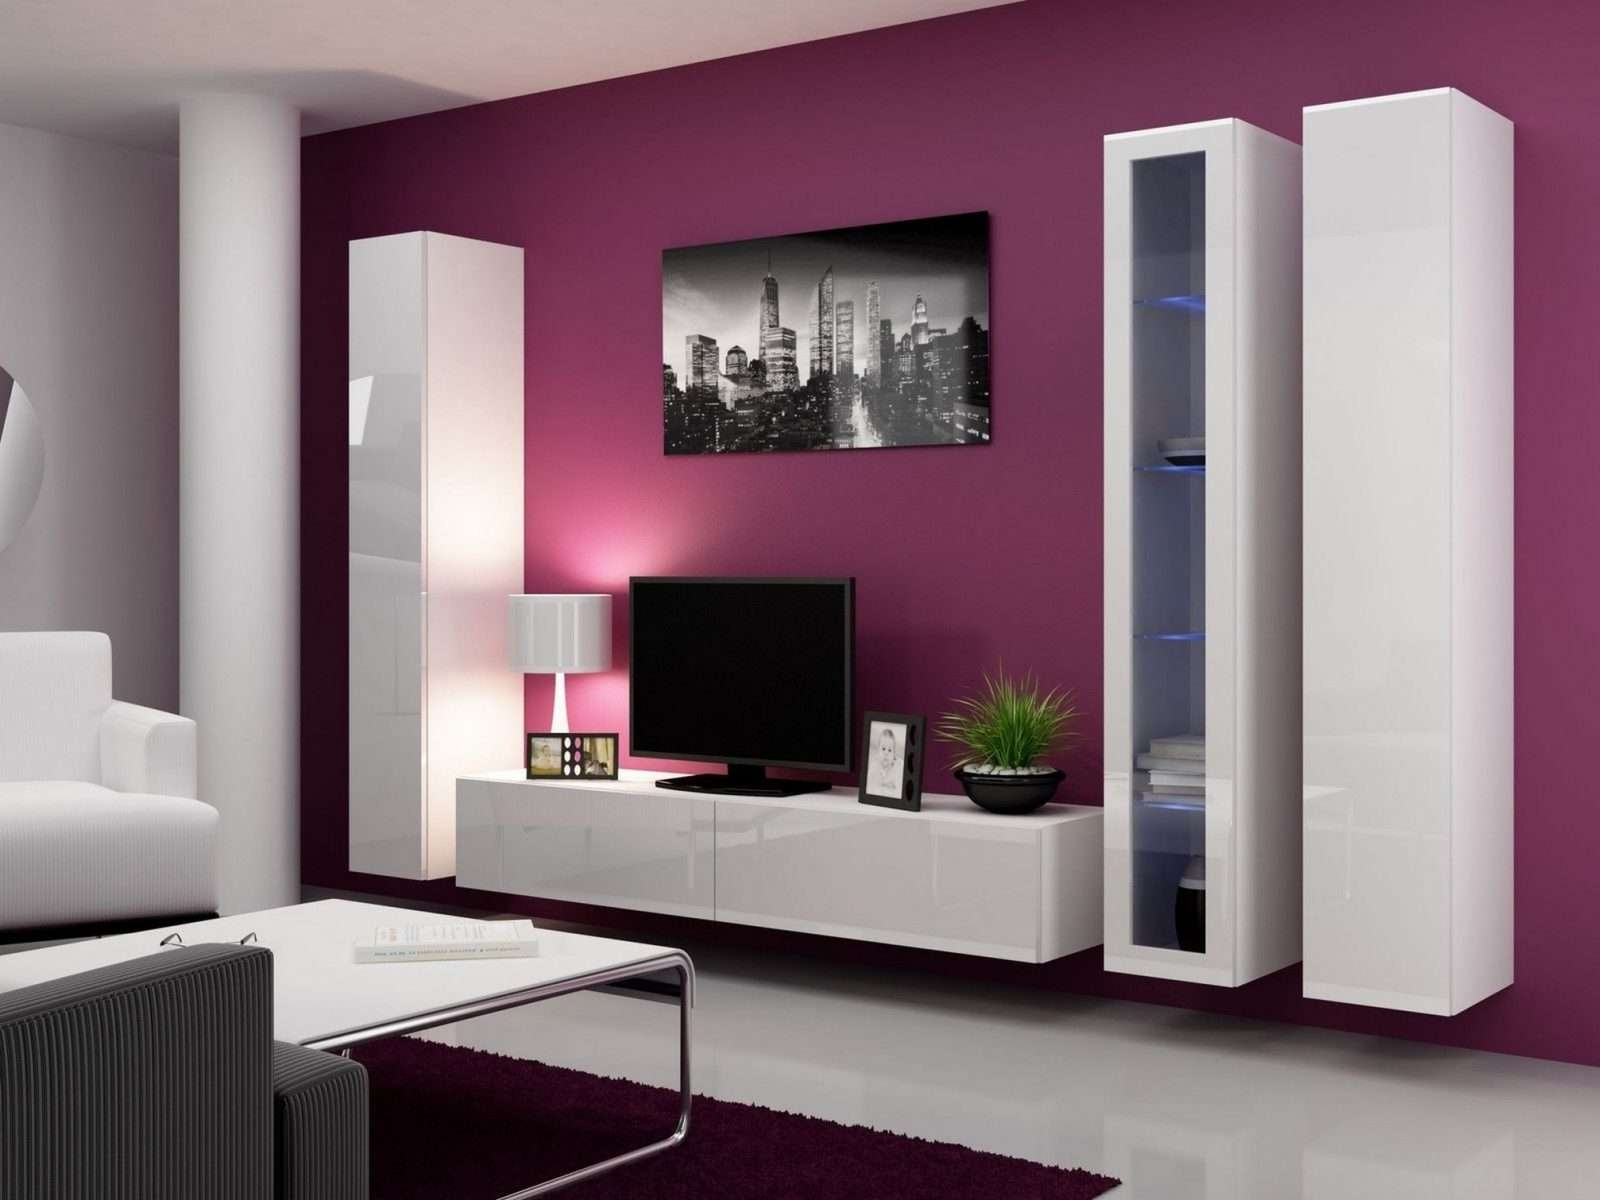 Wall Mounted Media Cabinets Furniture Interior Contemporary White Intended For Modern Wall Mount Tv Stands (View 9 of 15)